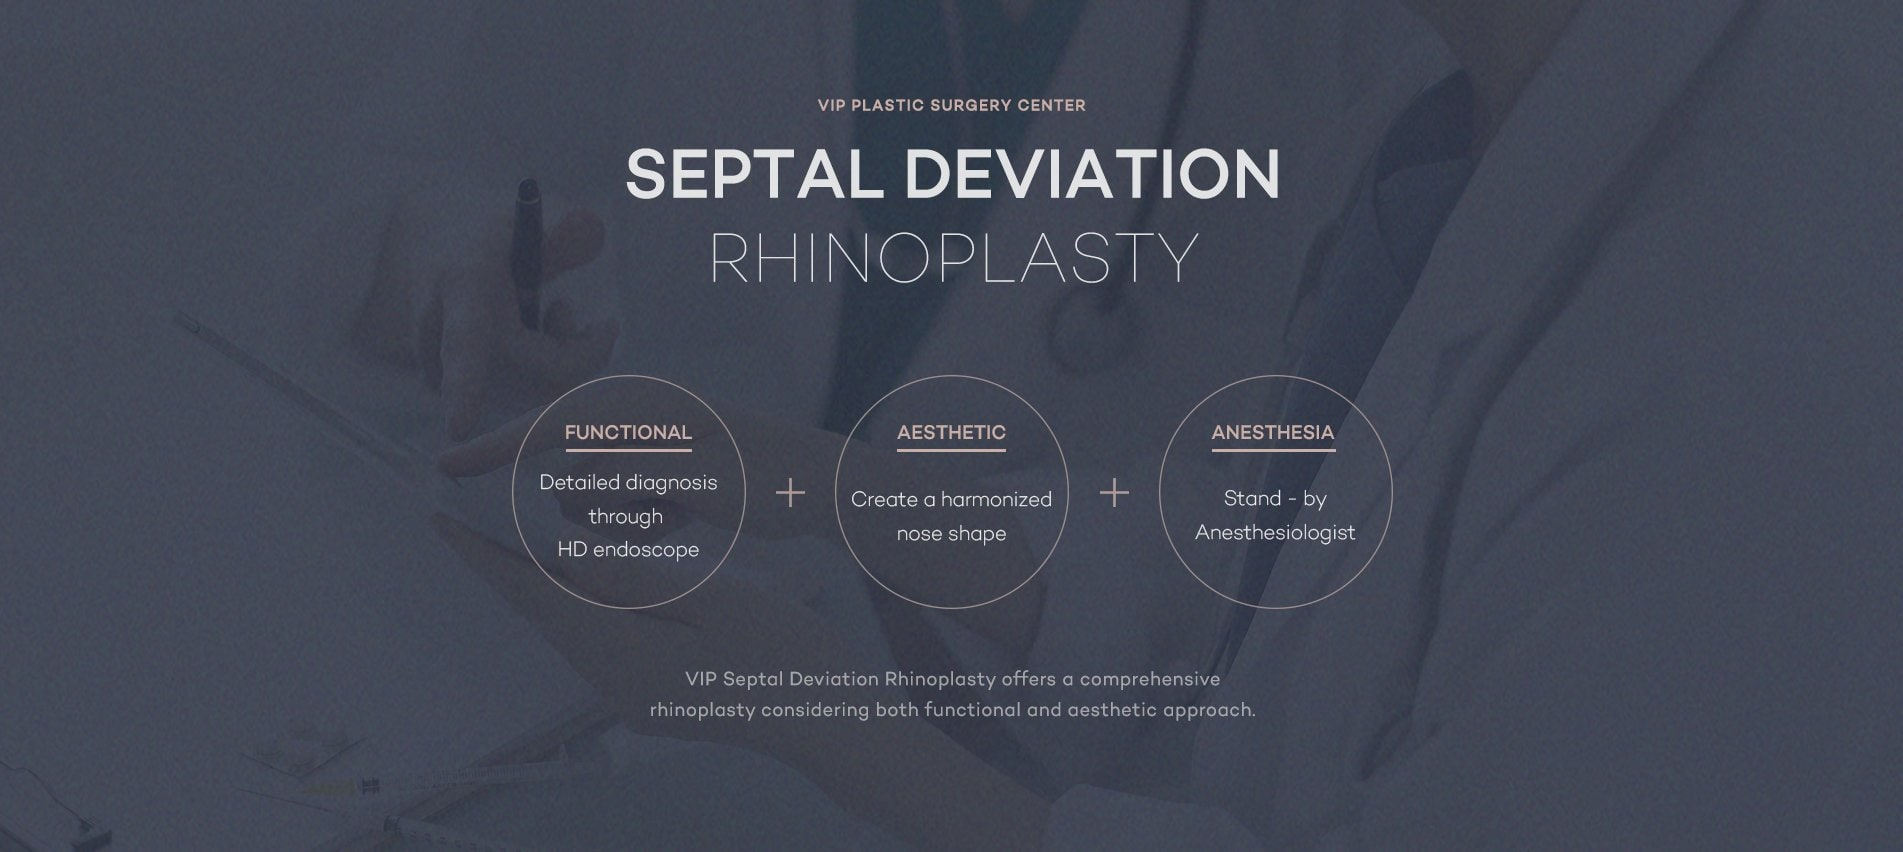 Septal Deviation Rhinoplasty